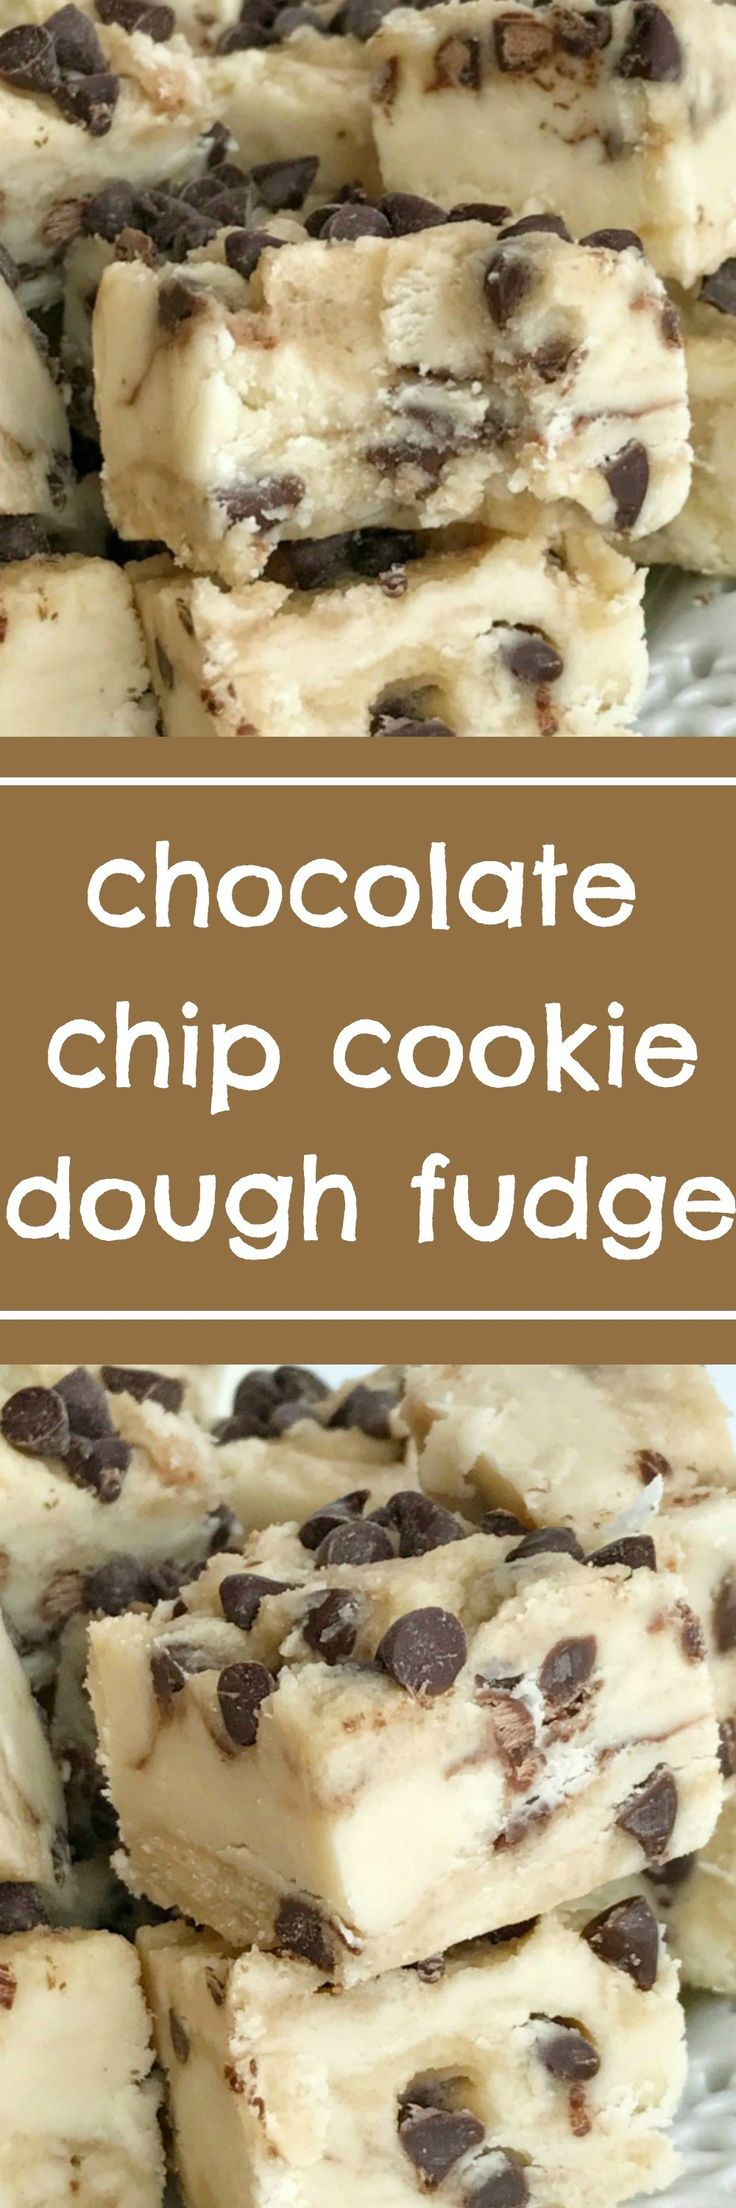 A sweet & creamy fudge that tastes exactly like chocolate chip cookie dough for sweet treats this Christmas